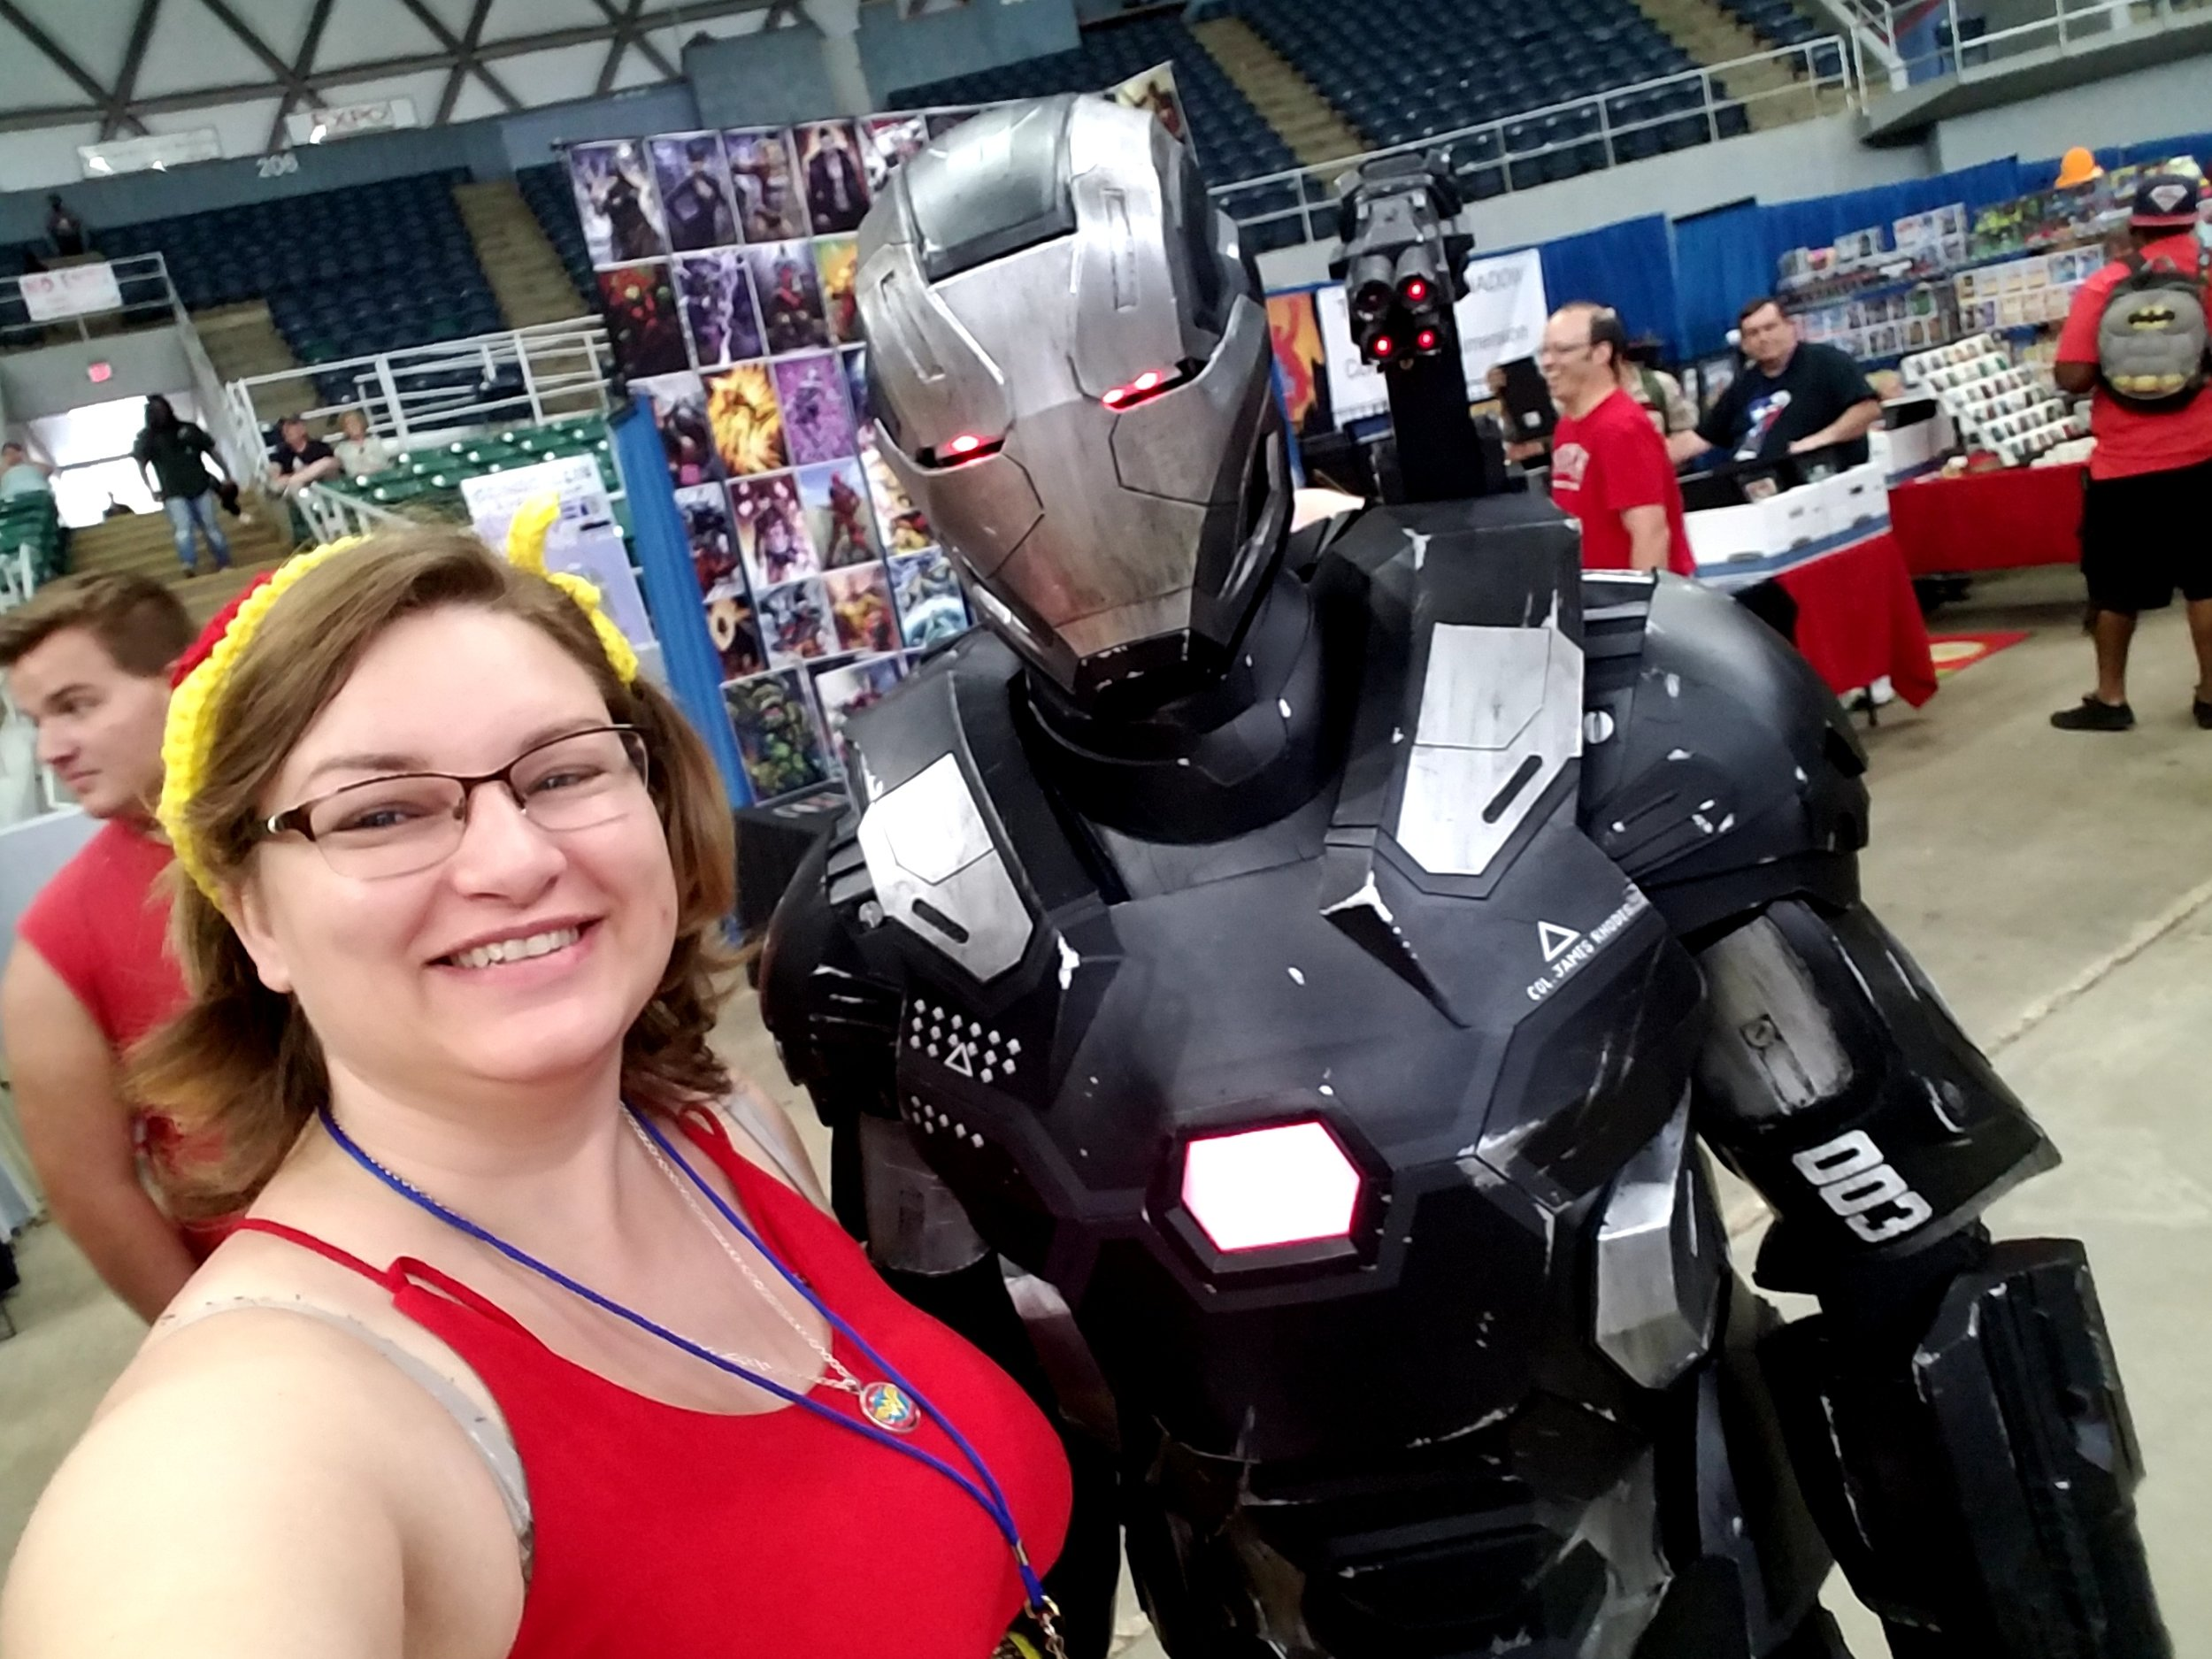 War Machine! I left the table to go get a photo with him.